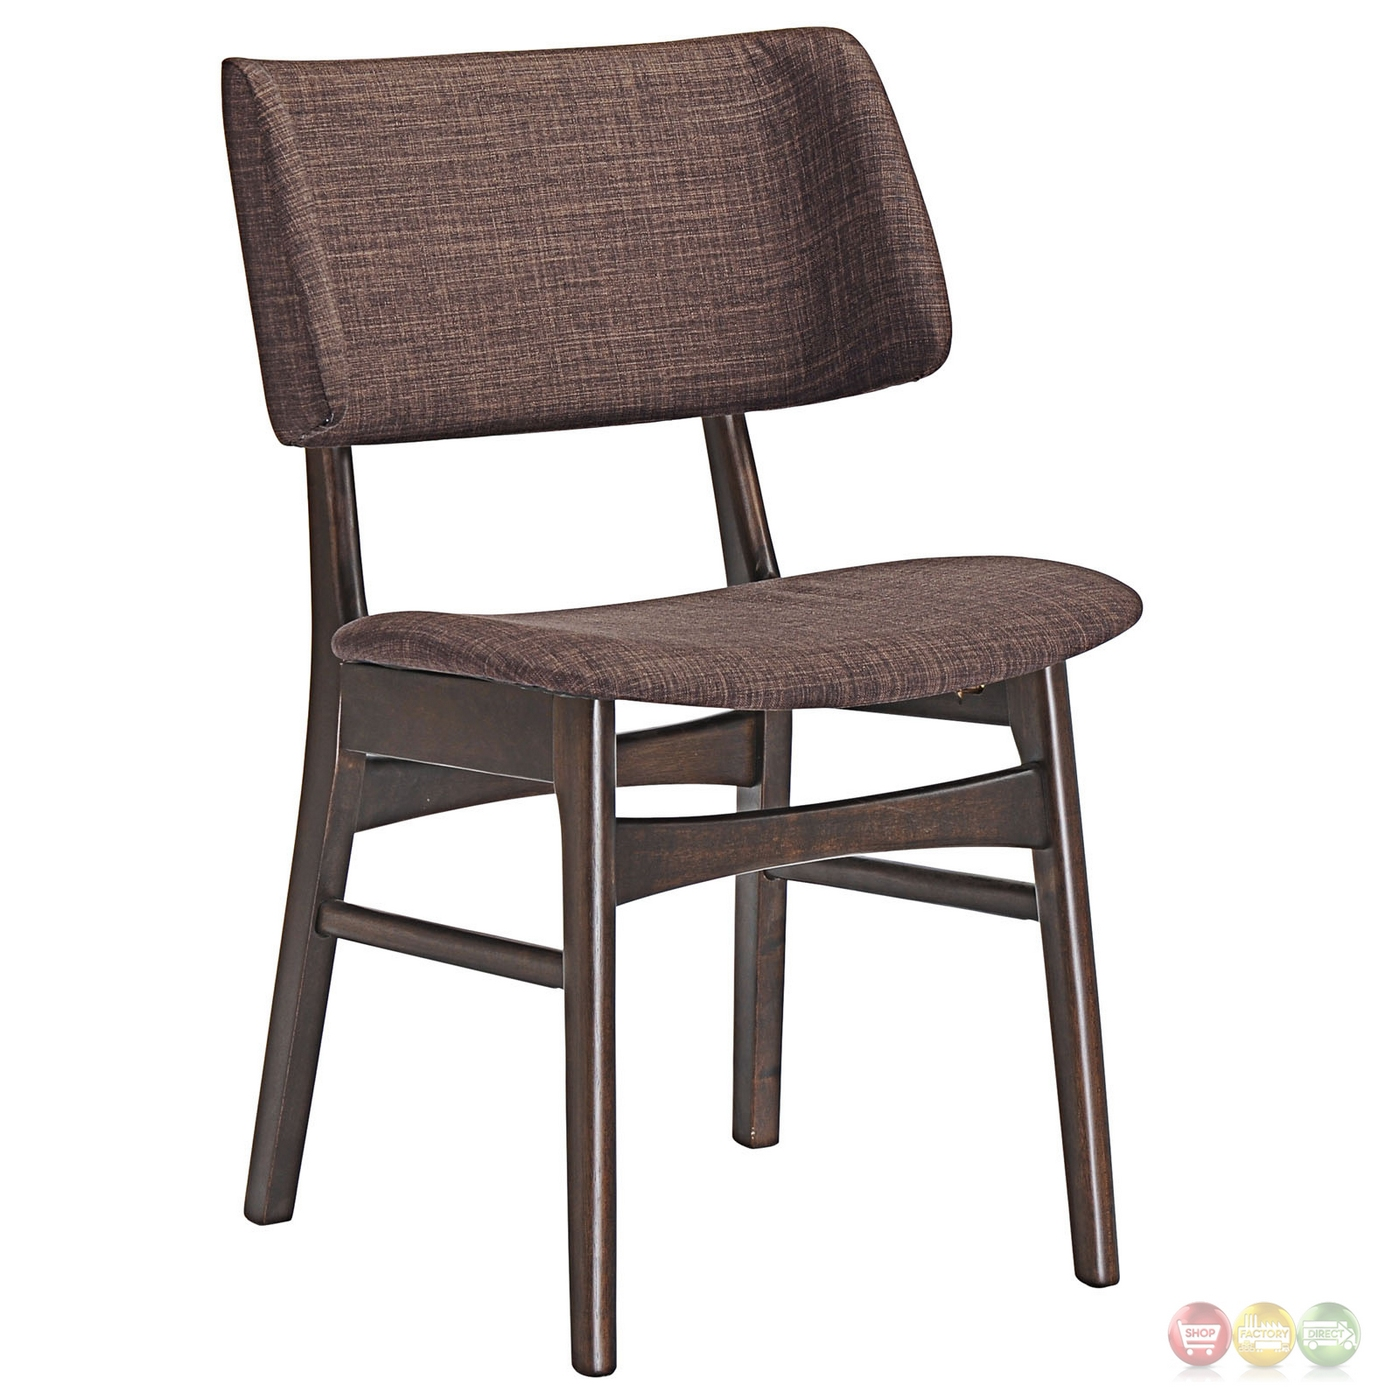 dining side chair set of vestige vintage dining side chair w linen upholstered seats walnut mocha